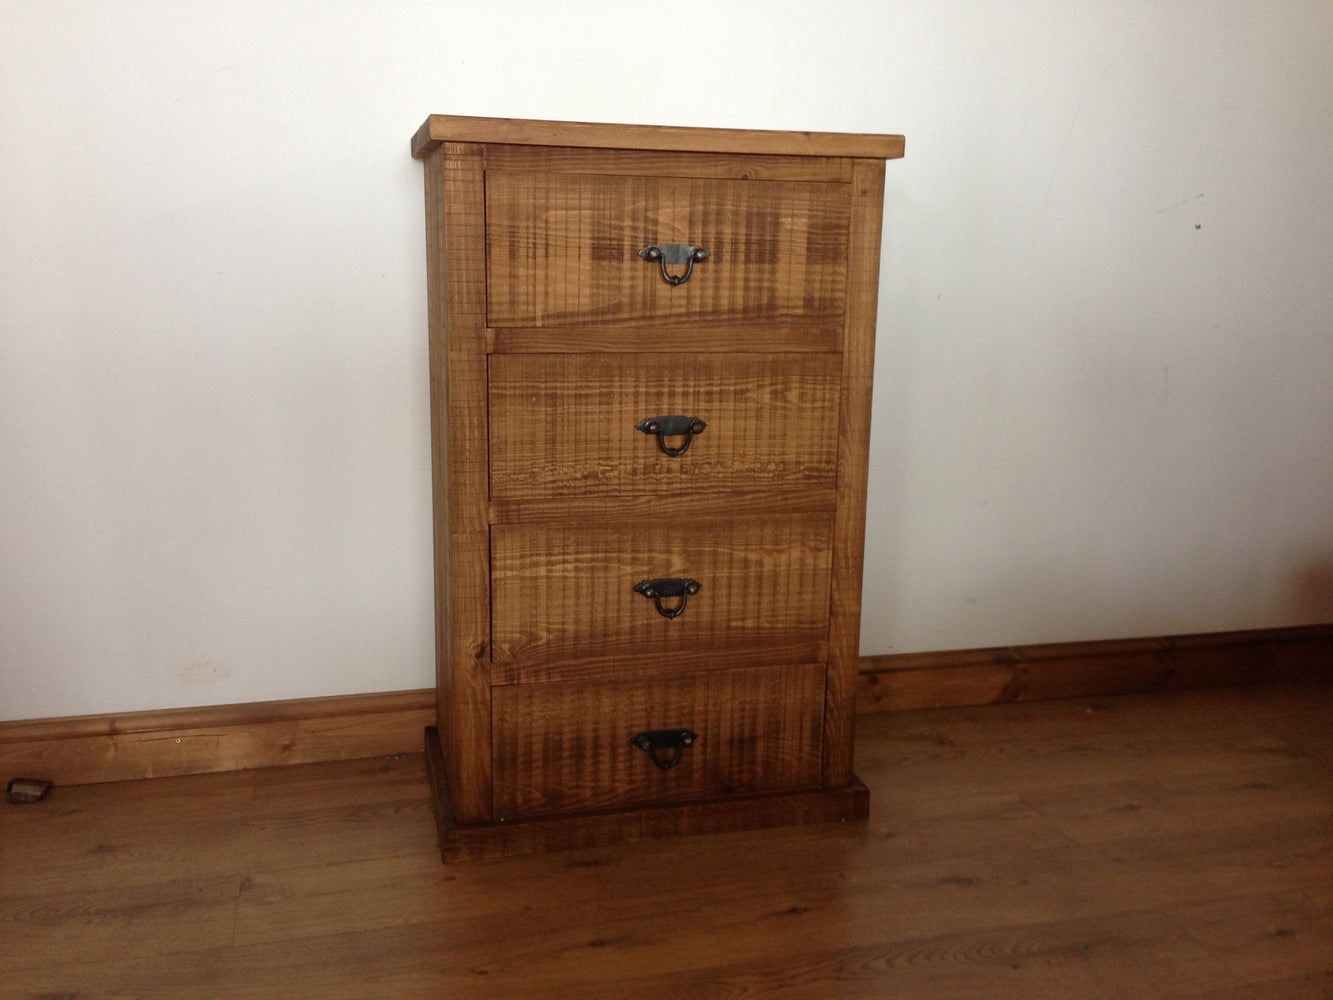 The Authentic Waxed Four-Drawer Chest